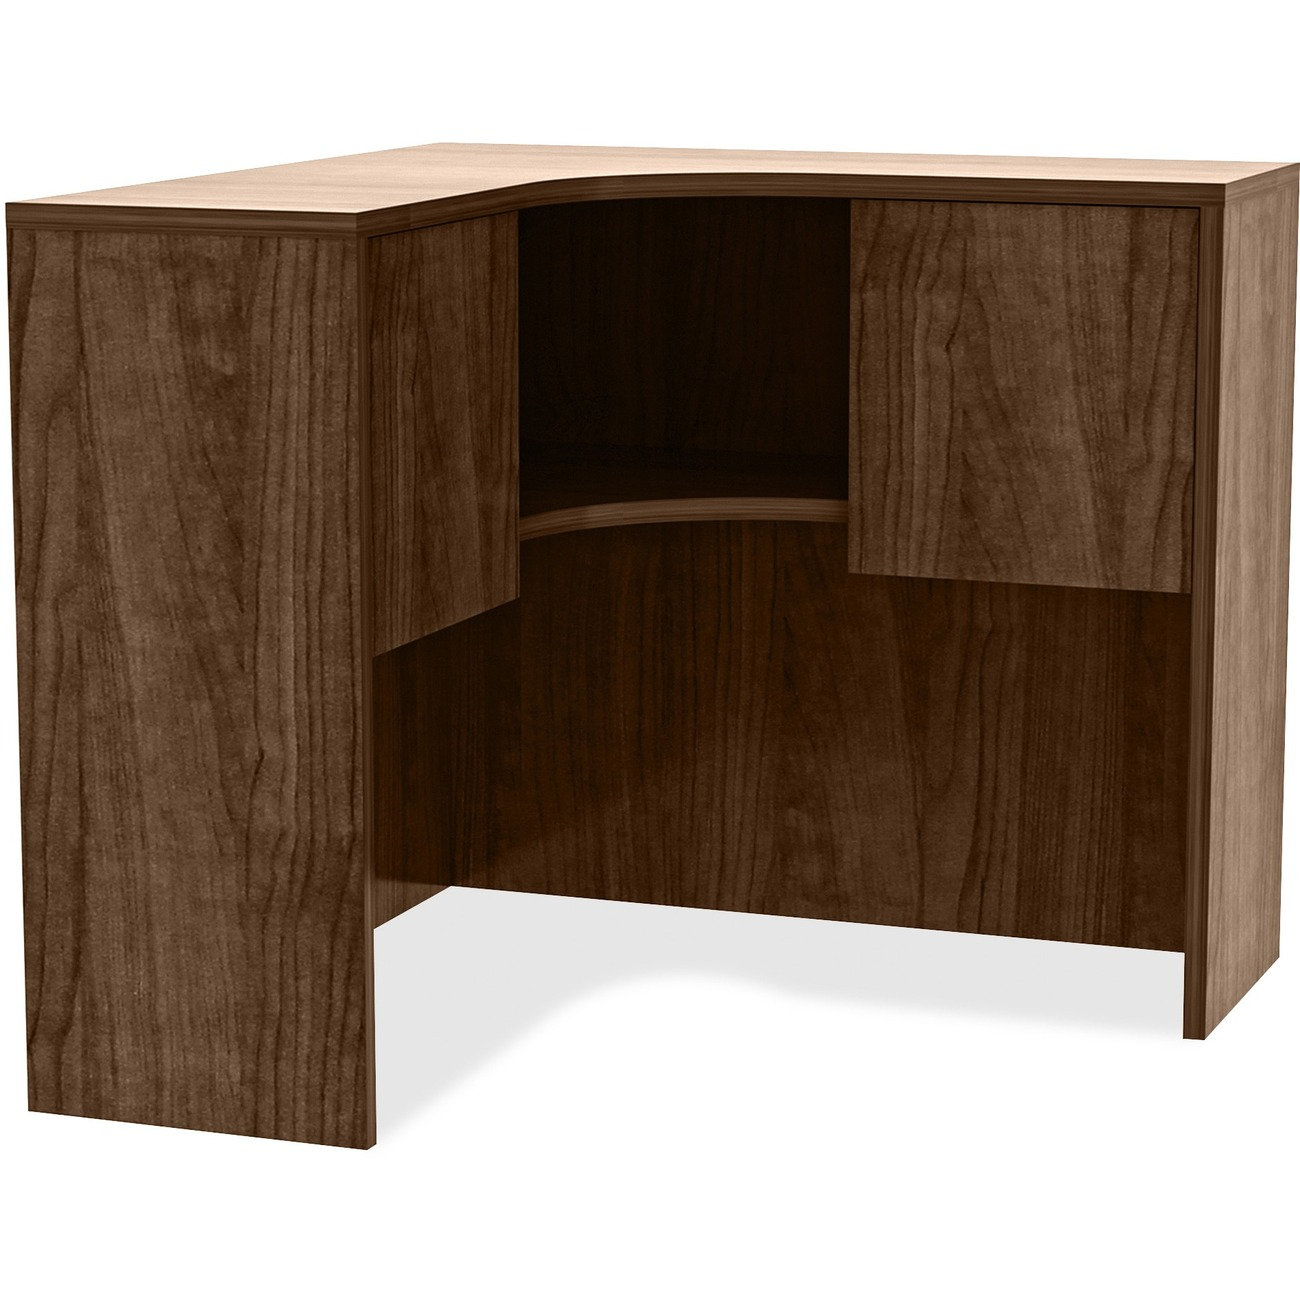 Corner Hutch Fits On Lorell Essentials Series Laminate Desks To Expand Your Storage Space And Create Configurations Make The Most Efficient Use Of